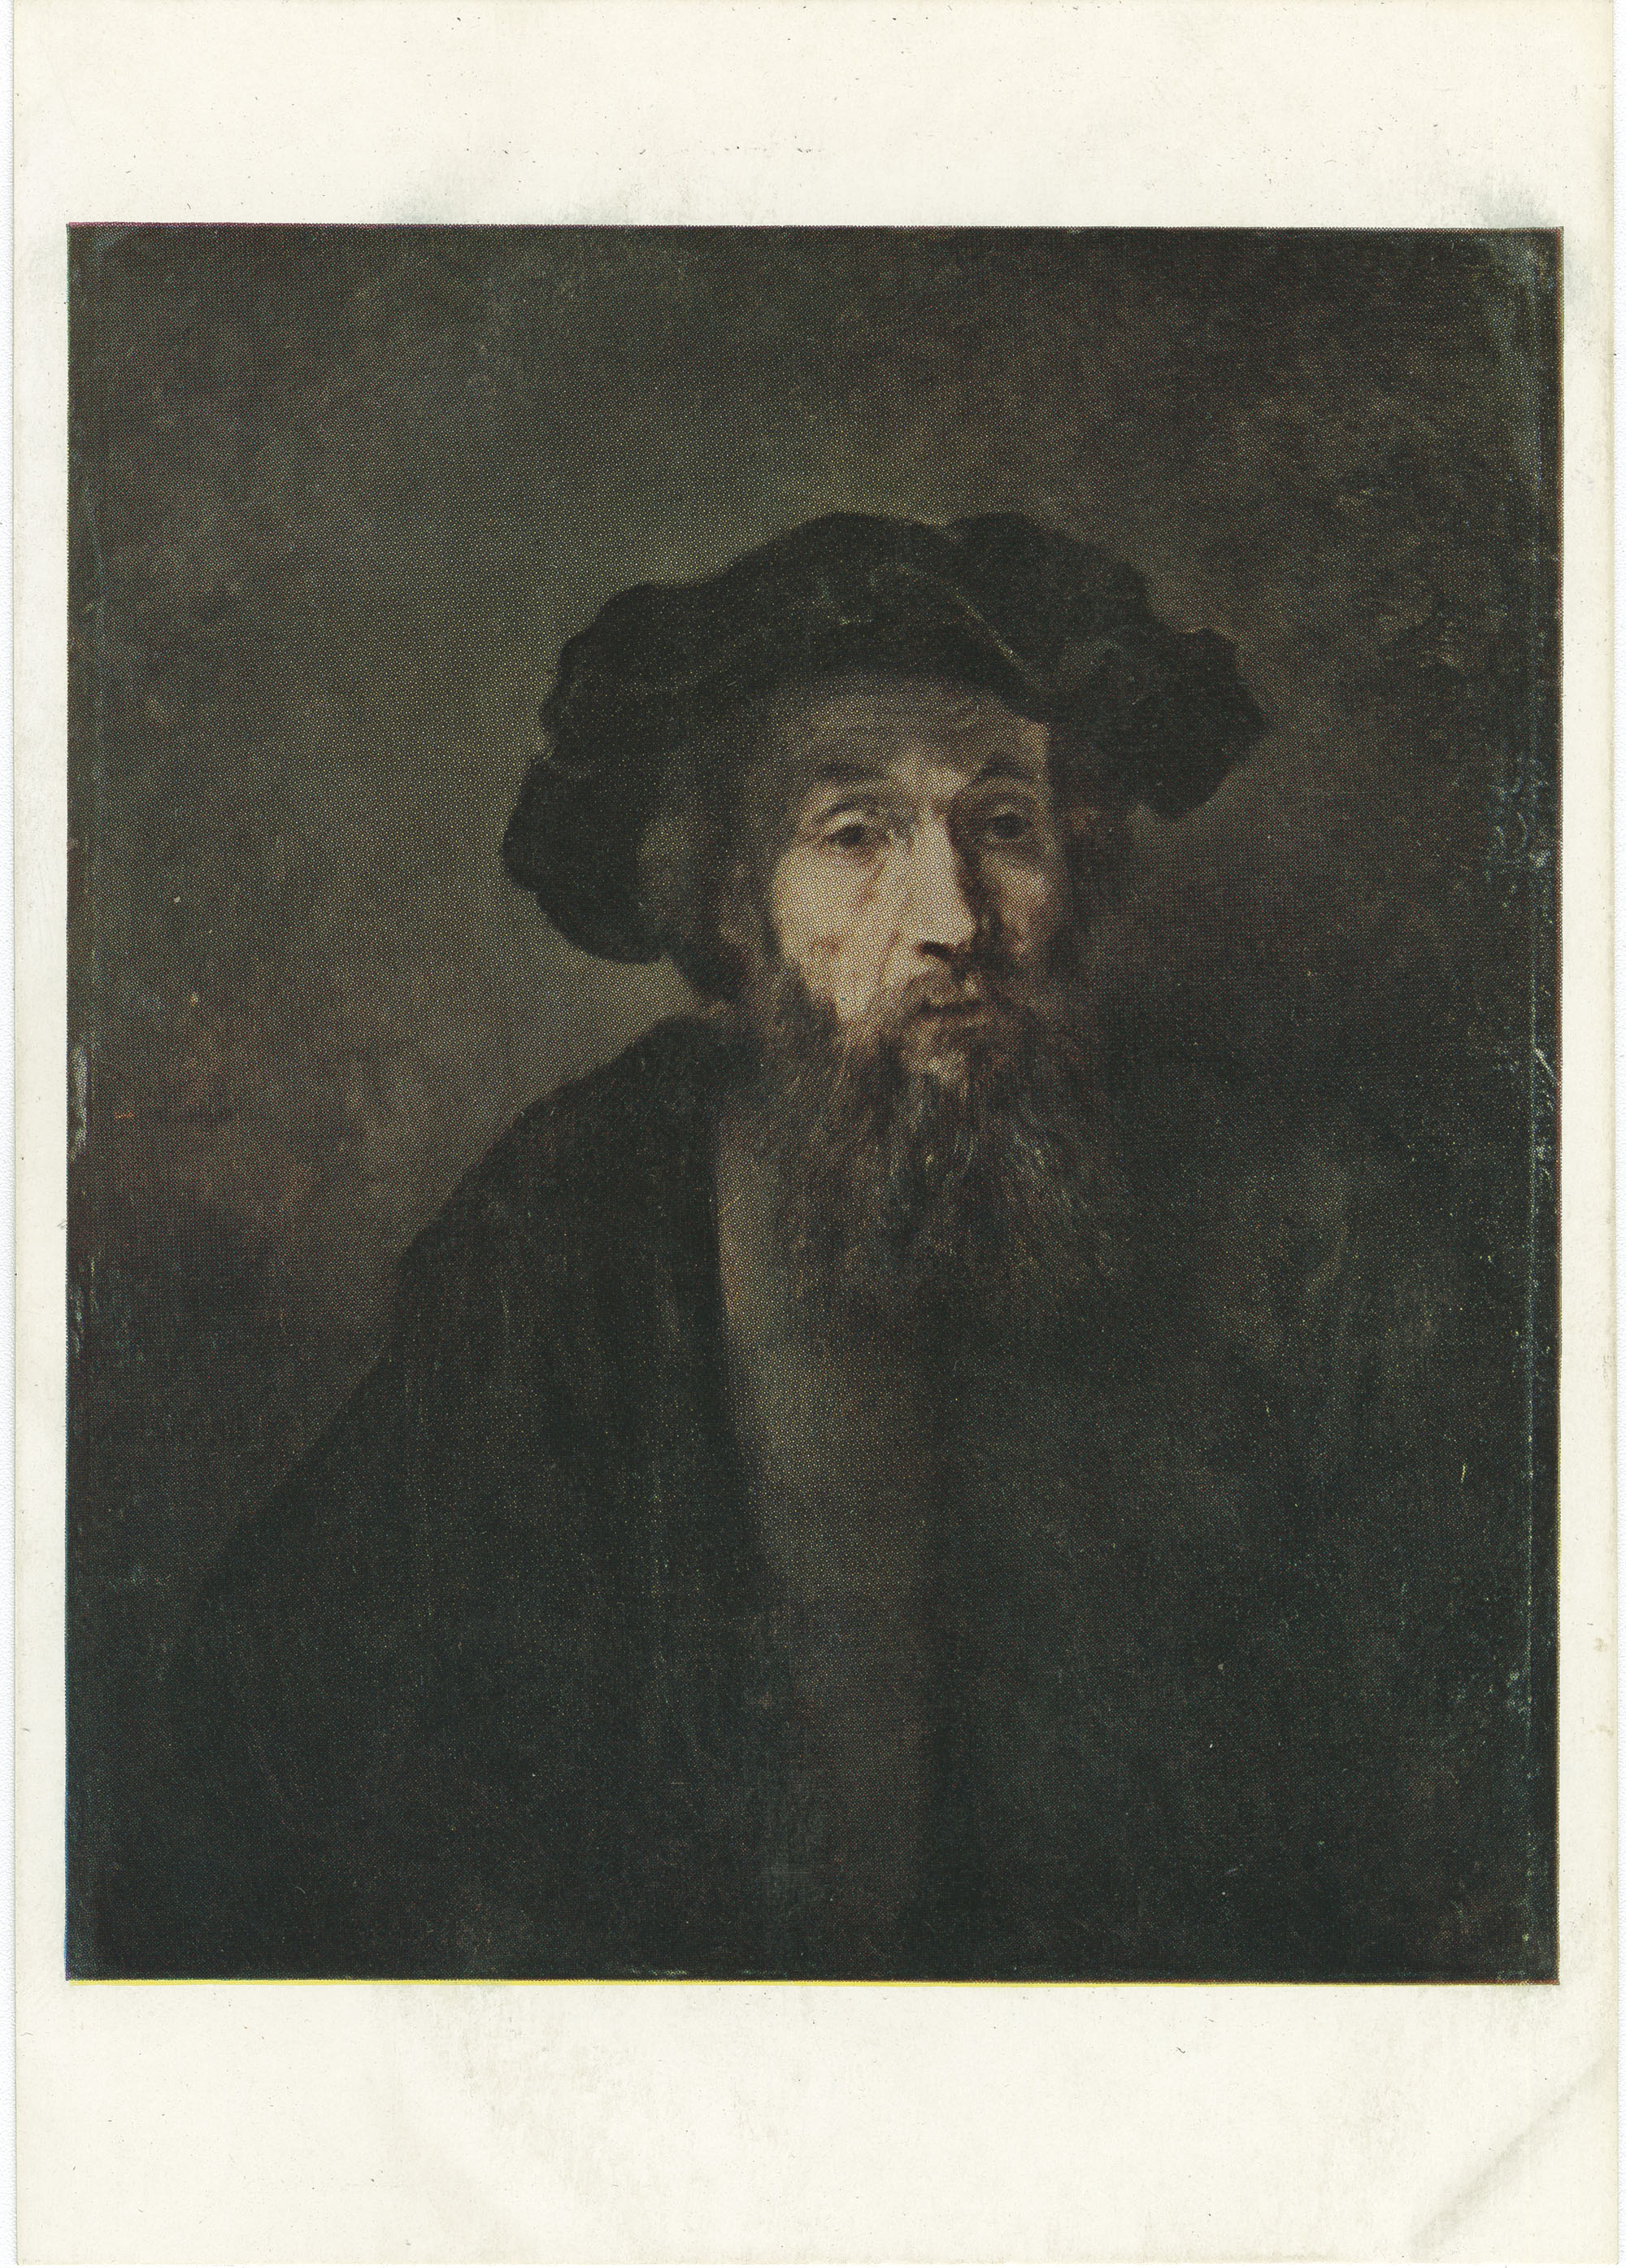 Bust of a Bearded Man in a Cap